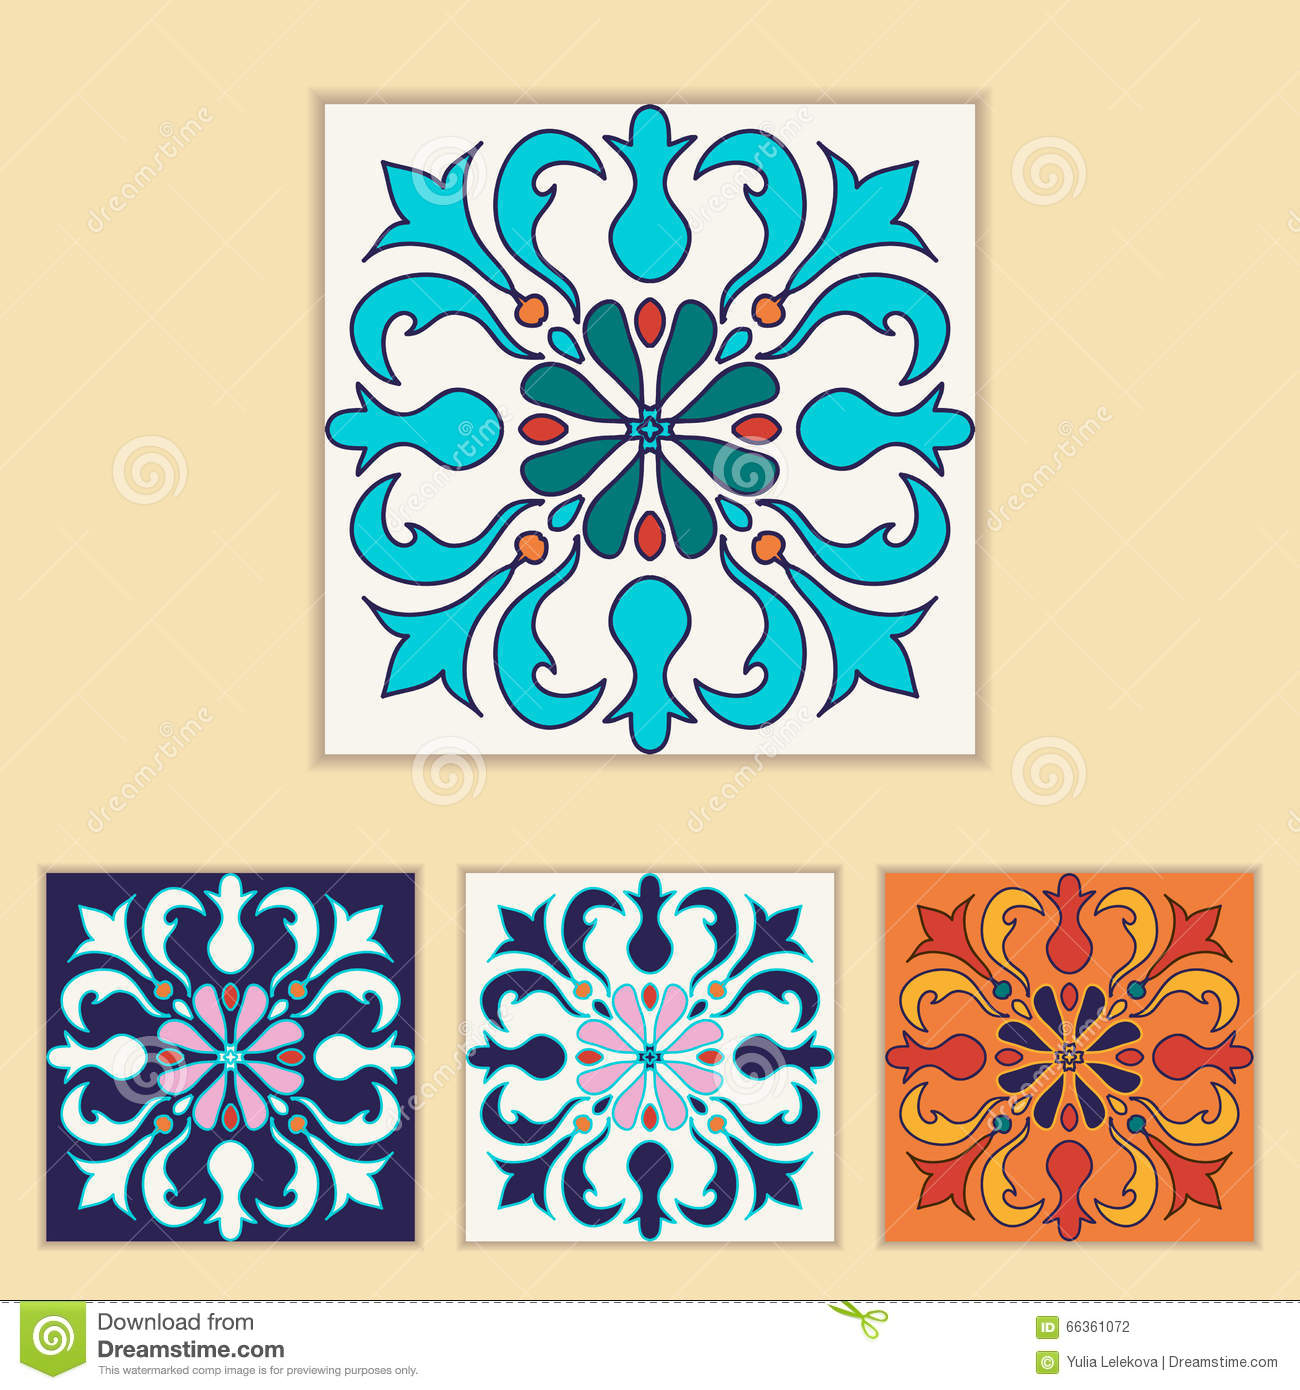 Vector Portuguese Tile Design In Four Different Color Beautiful Colored Pattern For Design And Fashion With Decorative Elements Illustration 66361072 Megapixl